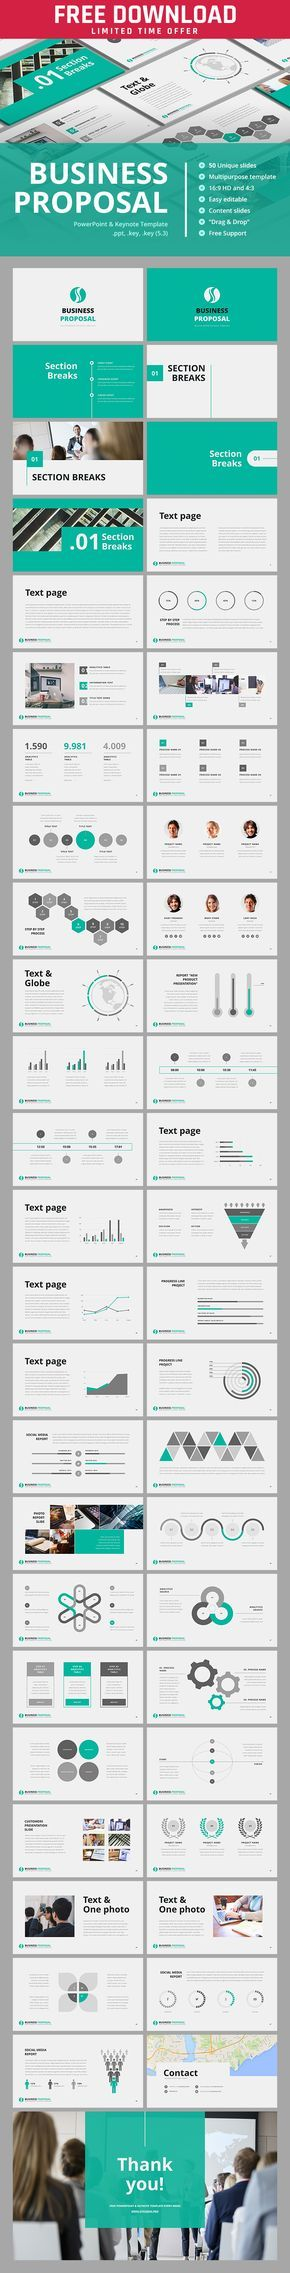 20 Best Ppt Images On Pinterest Ppt Design Ppt Template And